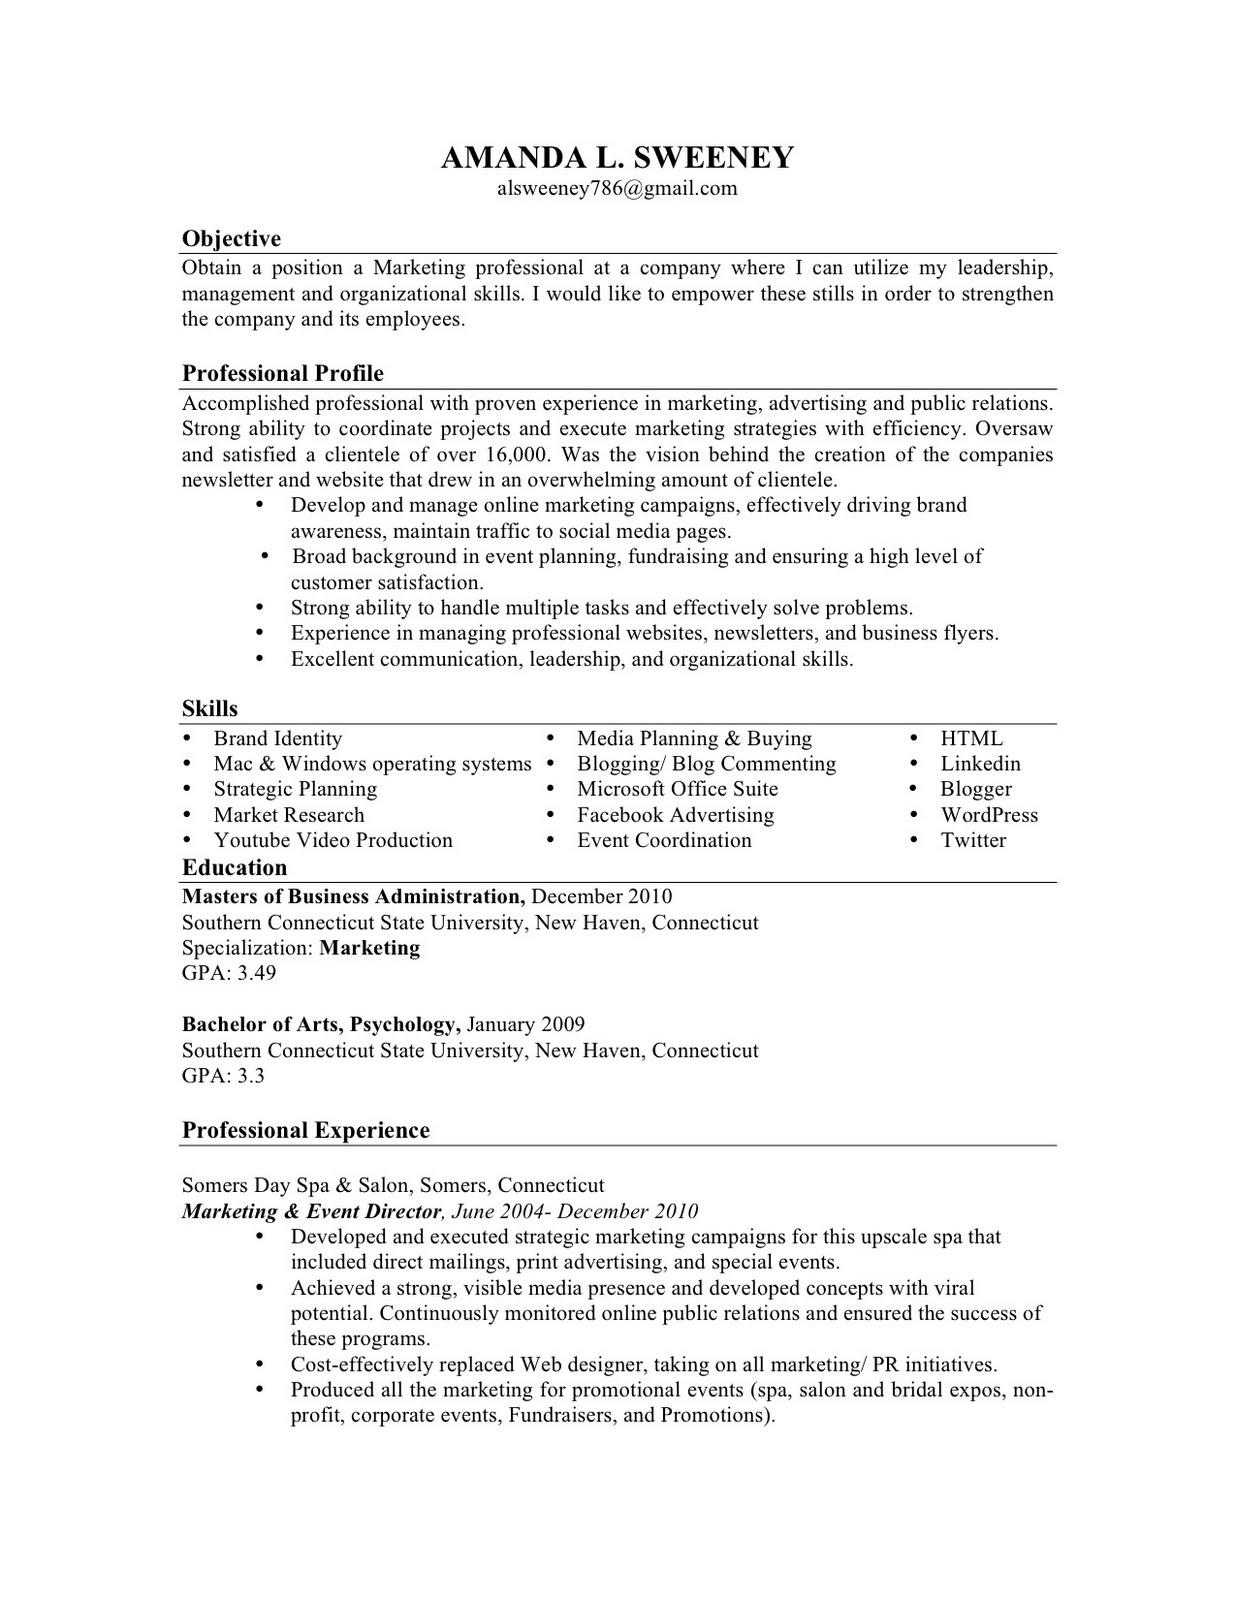 associate of arts in psychology resume